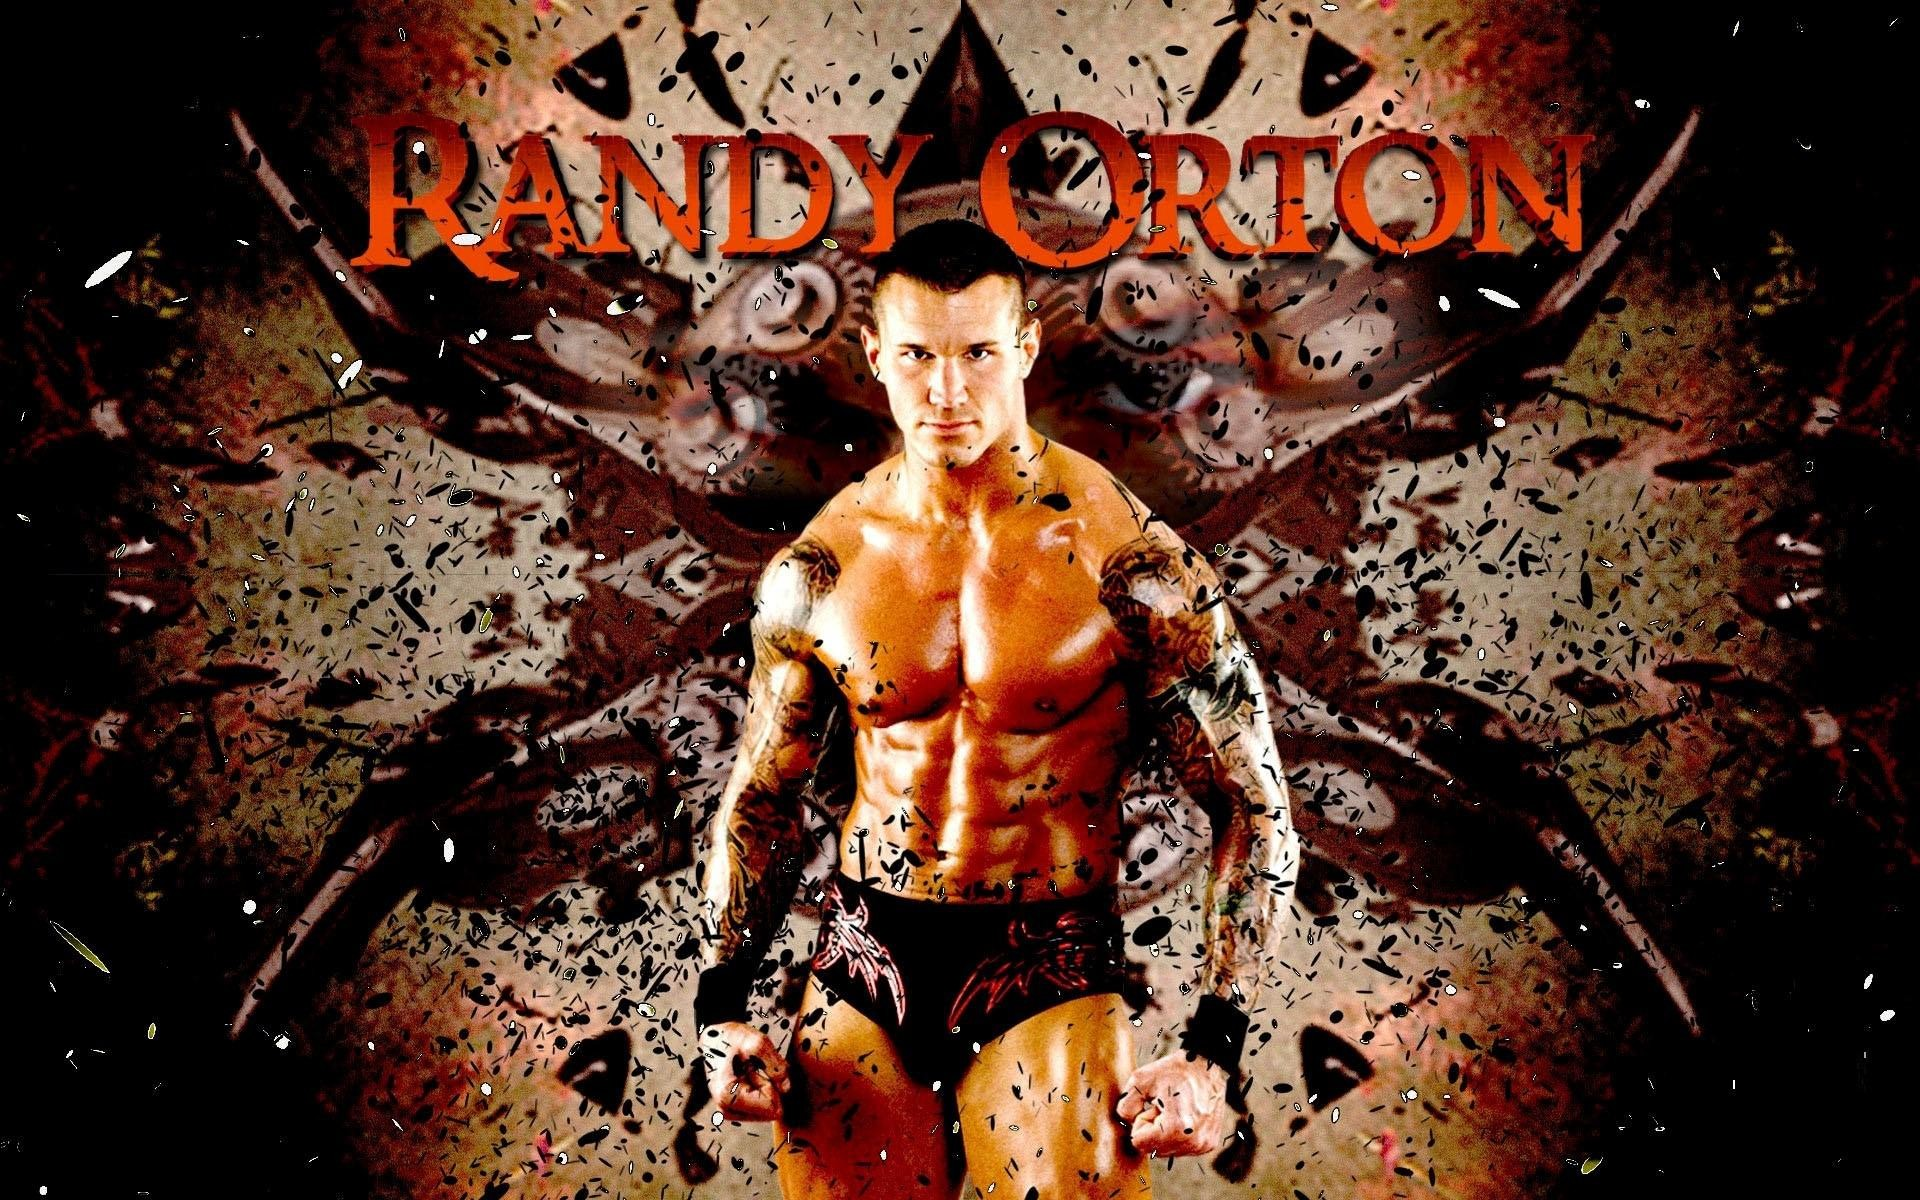 Randy Orton Rko Wallpaper